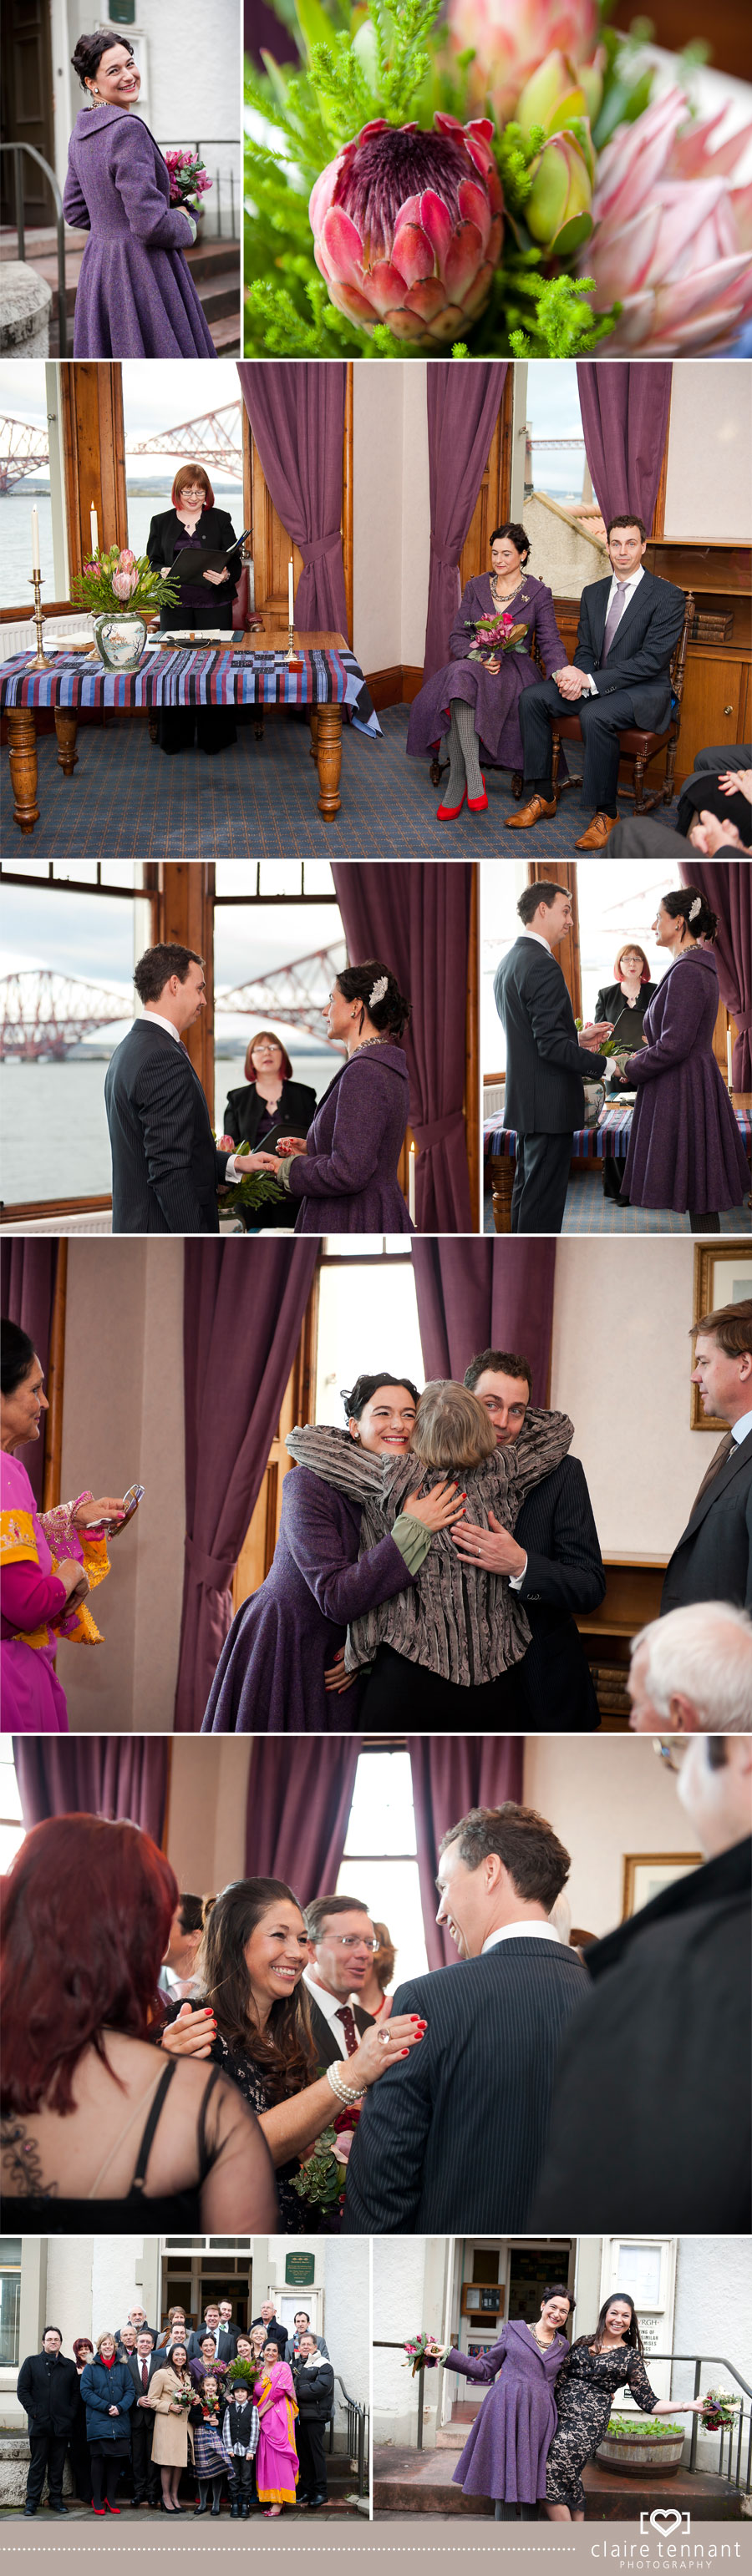 Natalie & Ronalds Wedding at South Queensferry Registry Office